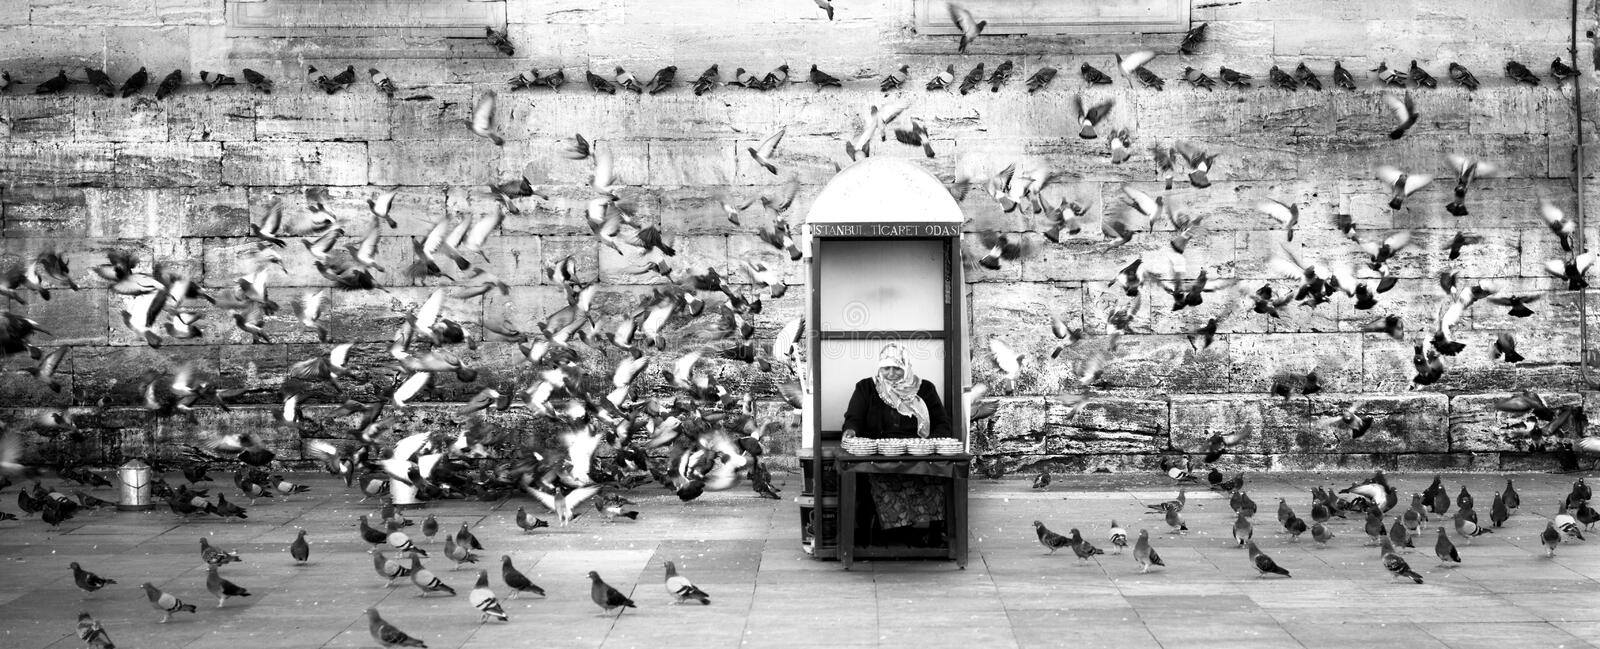 Person in a kiosk selling pigeon food royalty free stock images